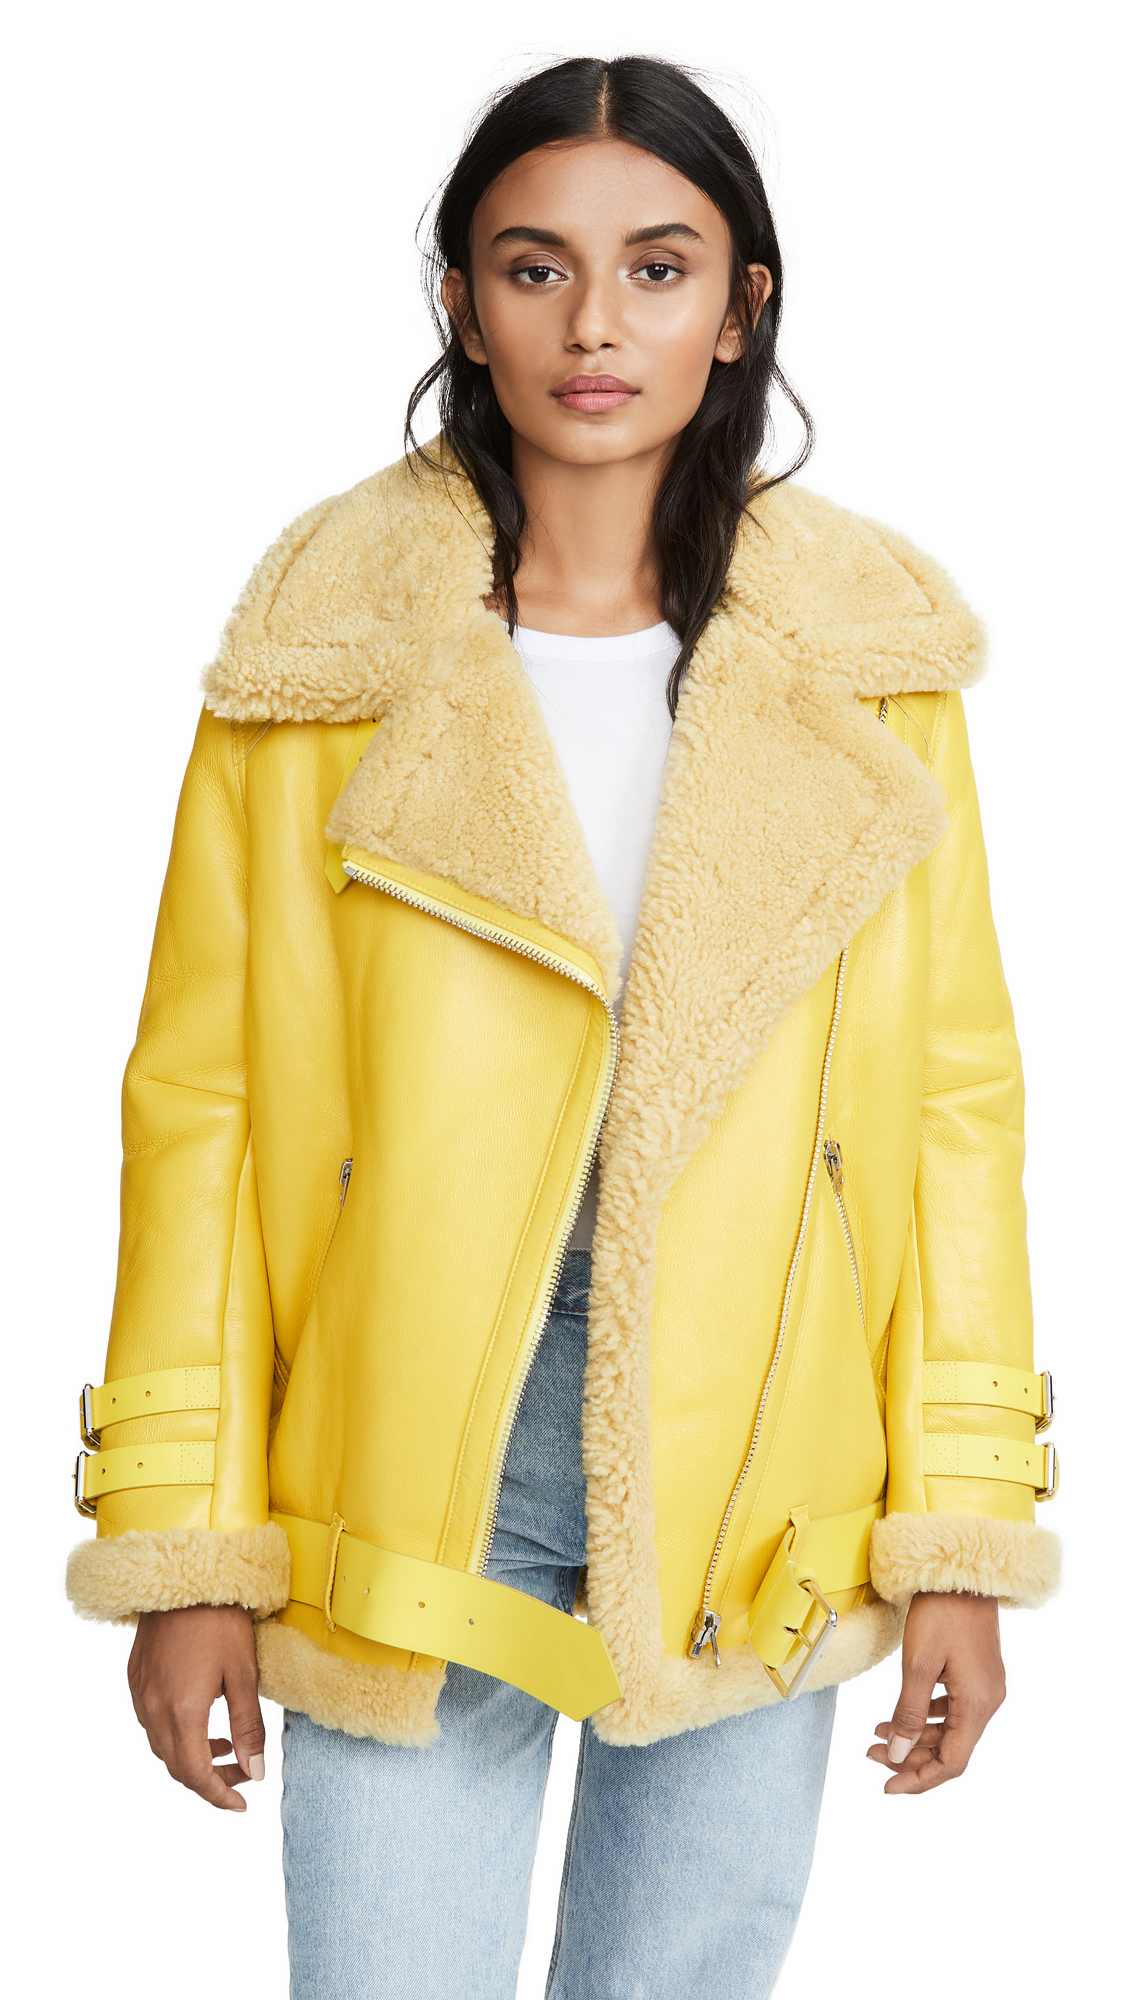 Acne Studios Velocite Shiny Leather Outerwear - Bright Yellow/Blonde